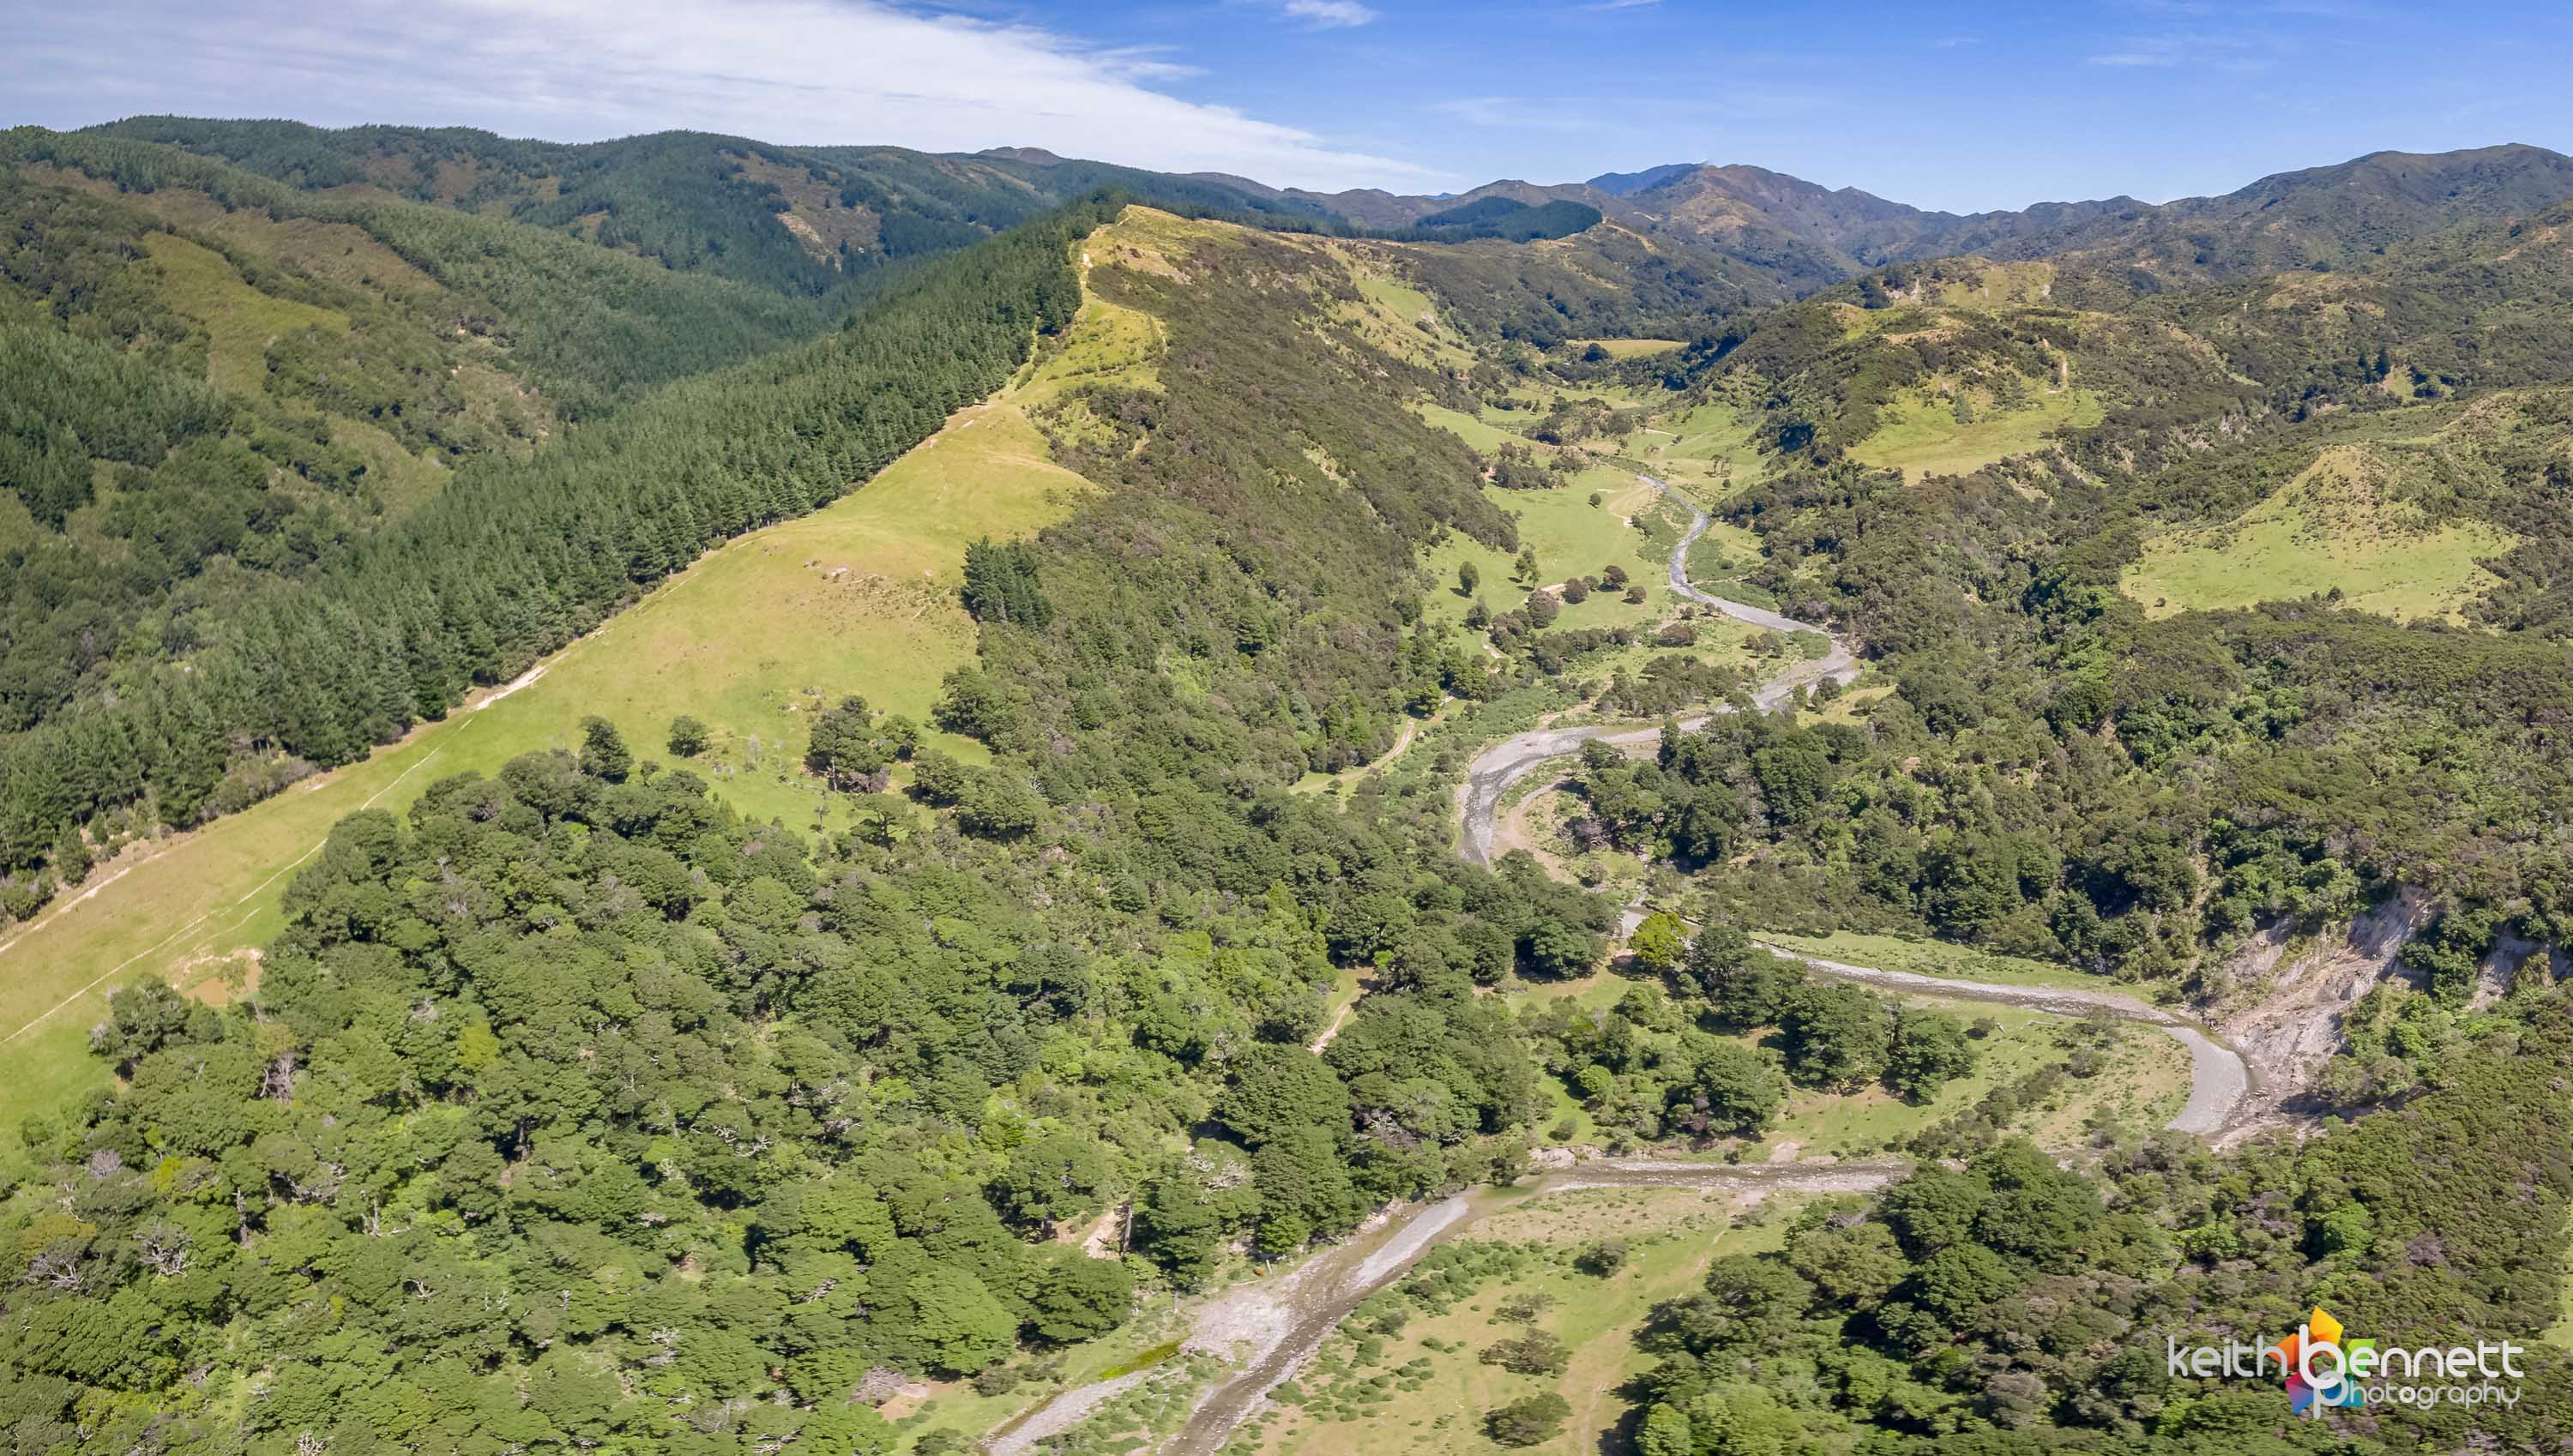 Terry Wairarapa Property Video 0477-Pano-2